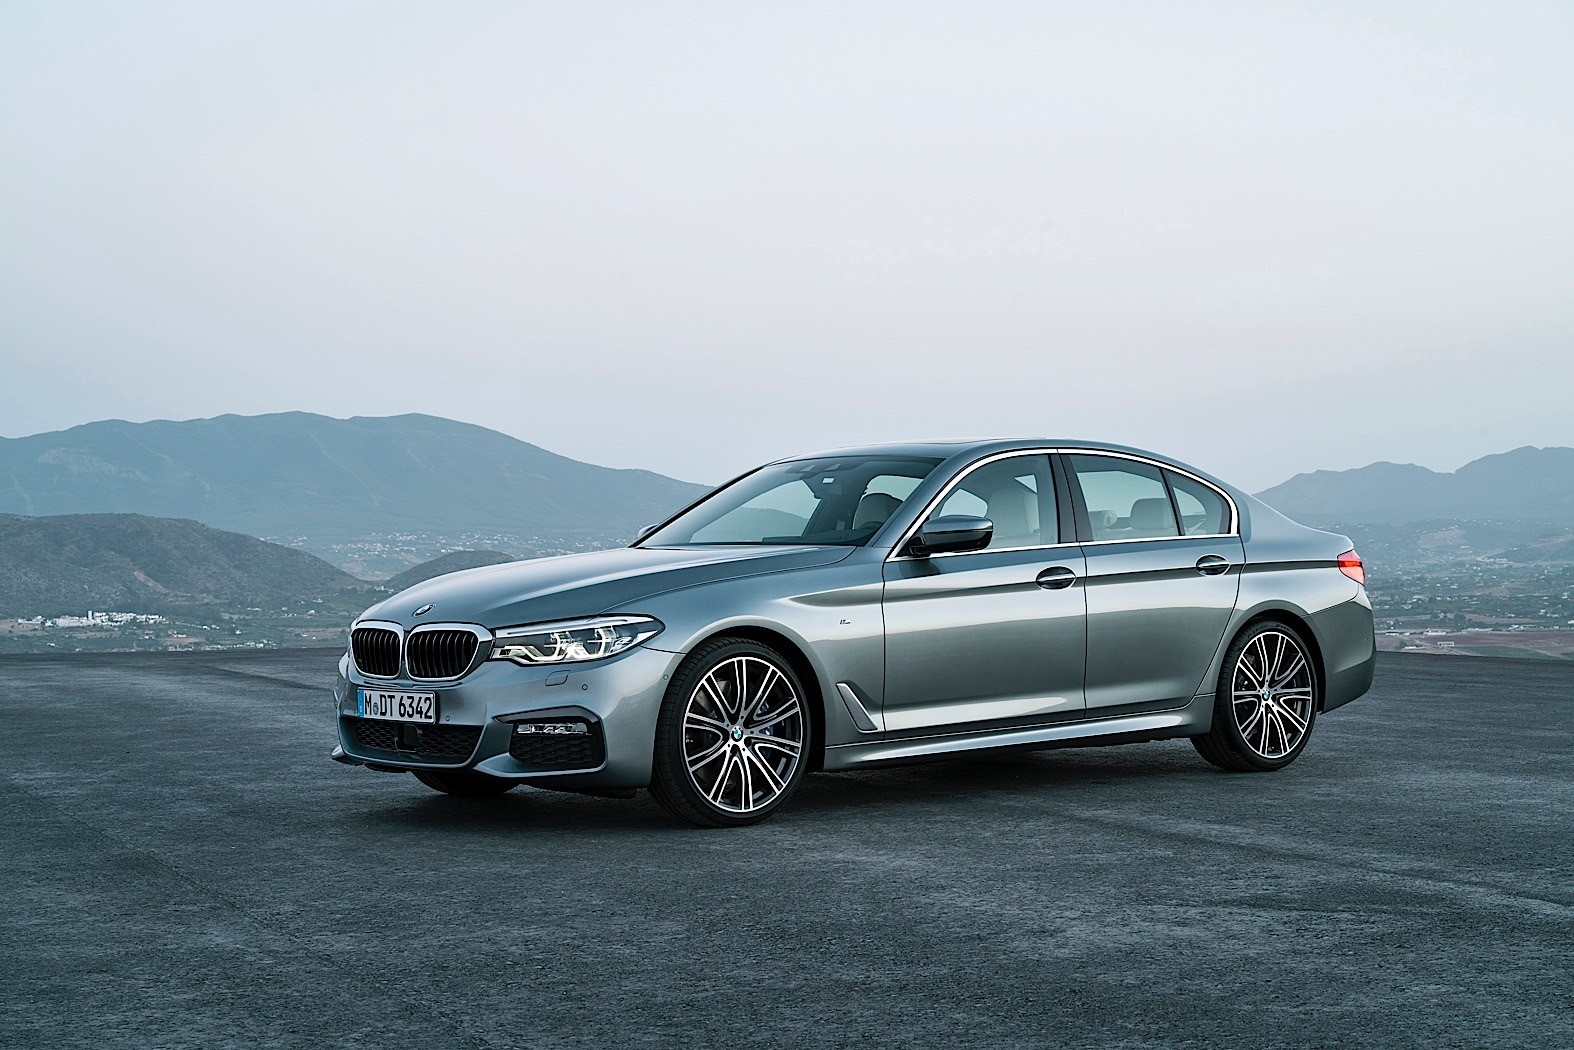 2017 BMW M550i xDrive (G30) Is Quicker Than the F10 M5 to